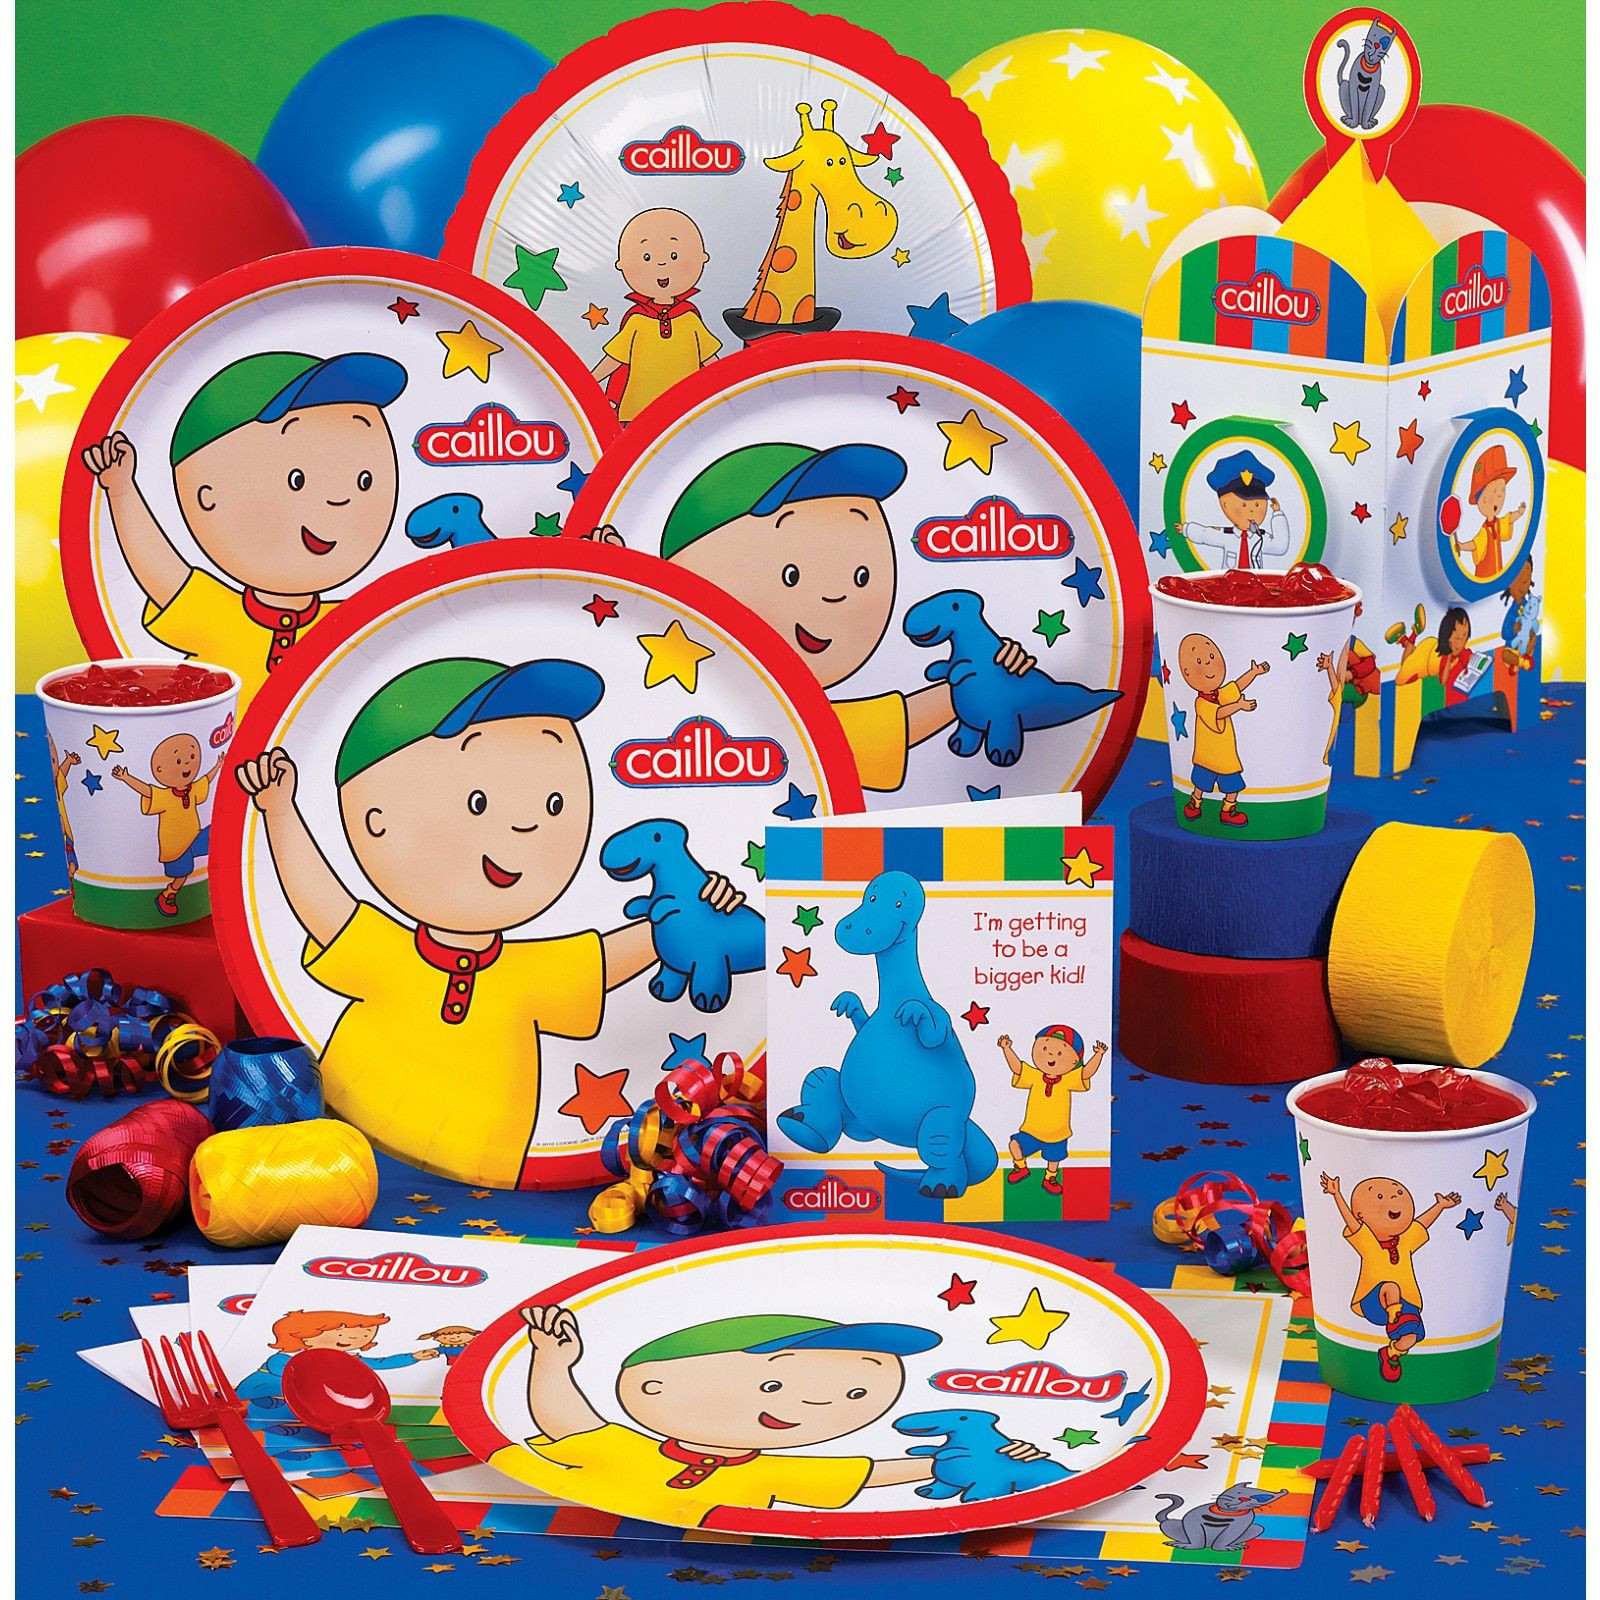 Caillou Birthday Decorations  Caillou Birthday Party on Pinterest